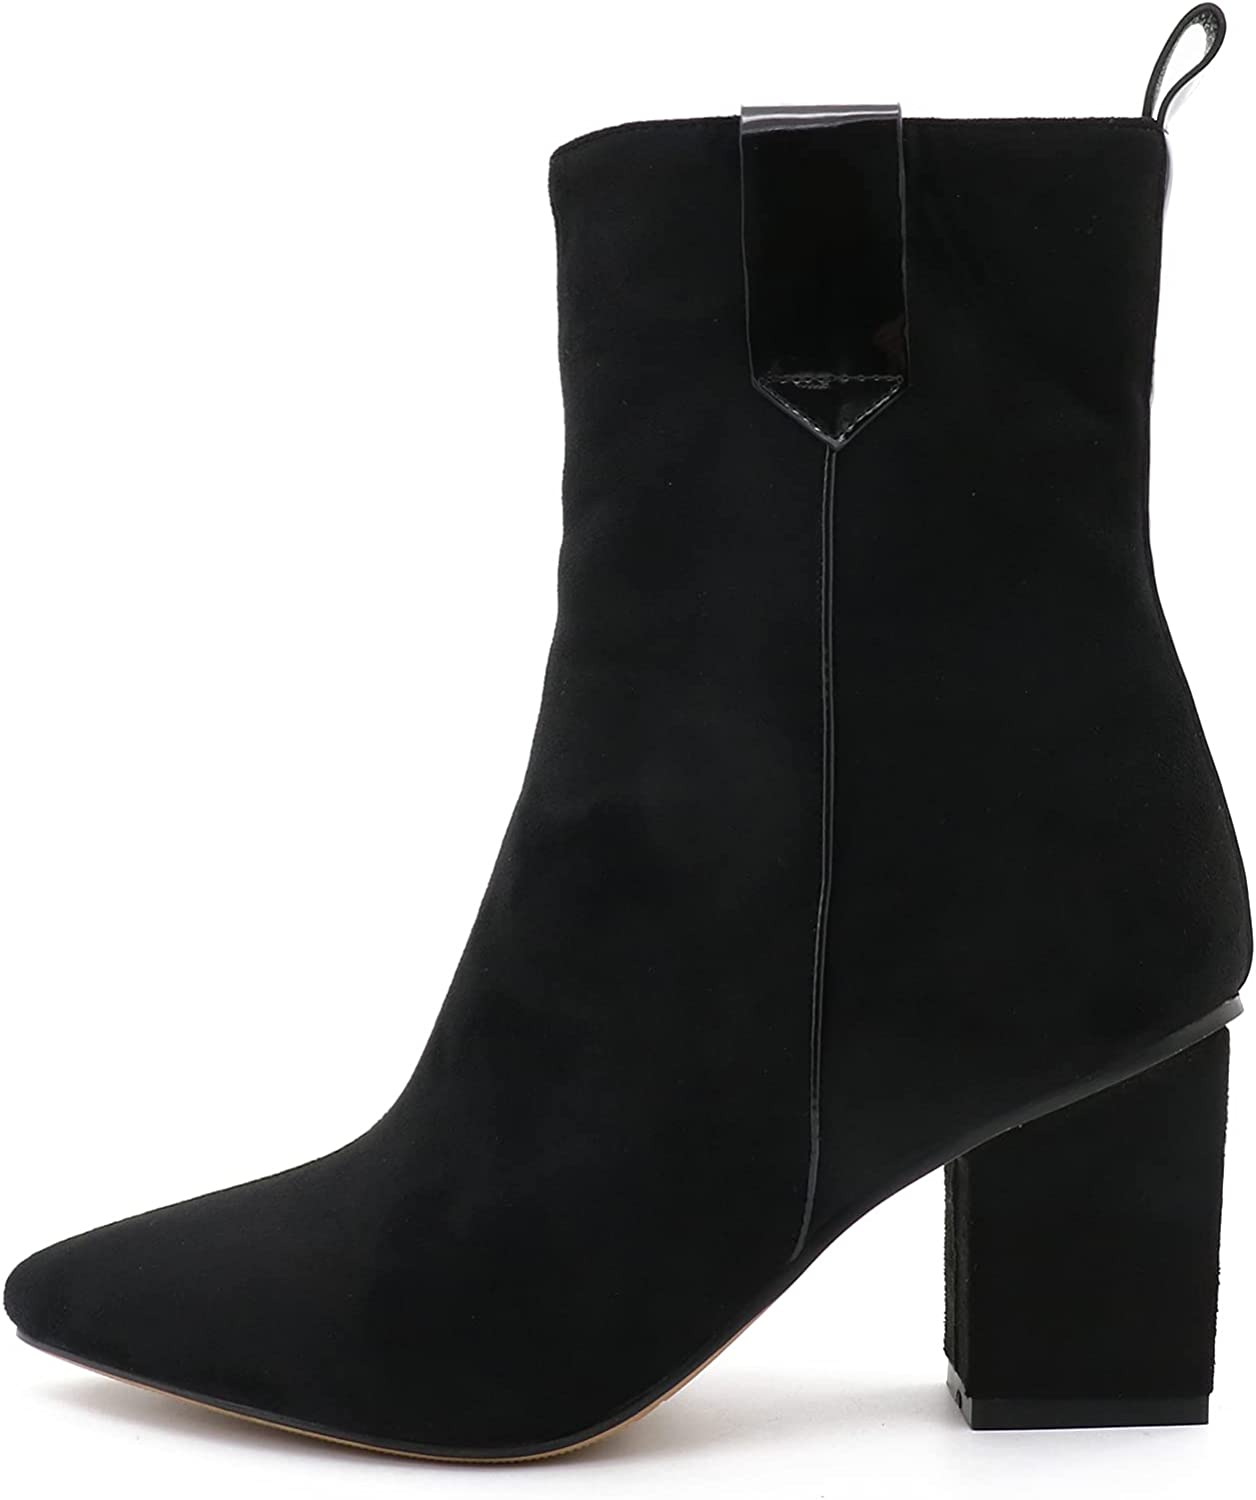 COLETER Women's Suede Ankle Boots,Square Chunky Mid Block Heel Pointed Toe Autumn Warm Mid Calf Boots